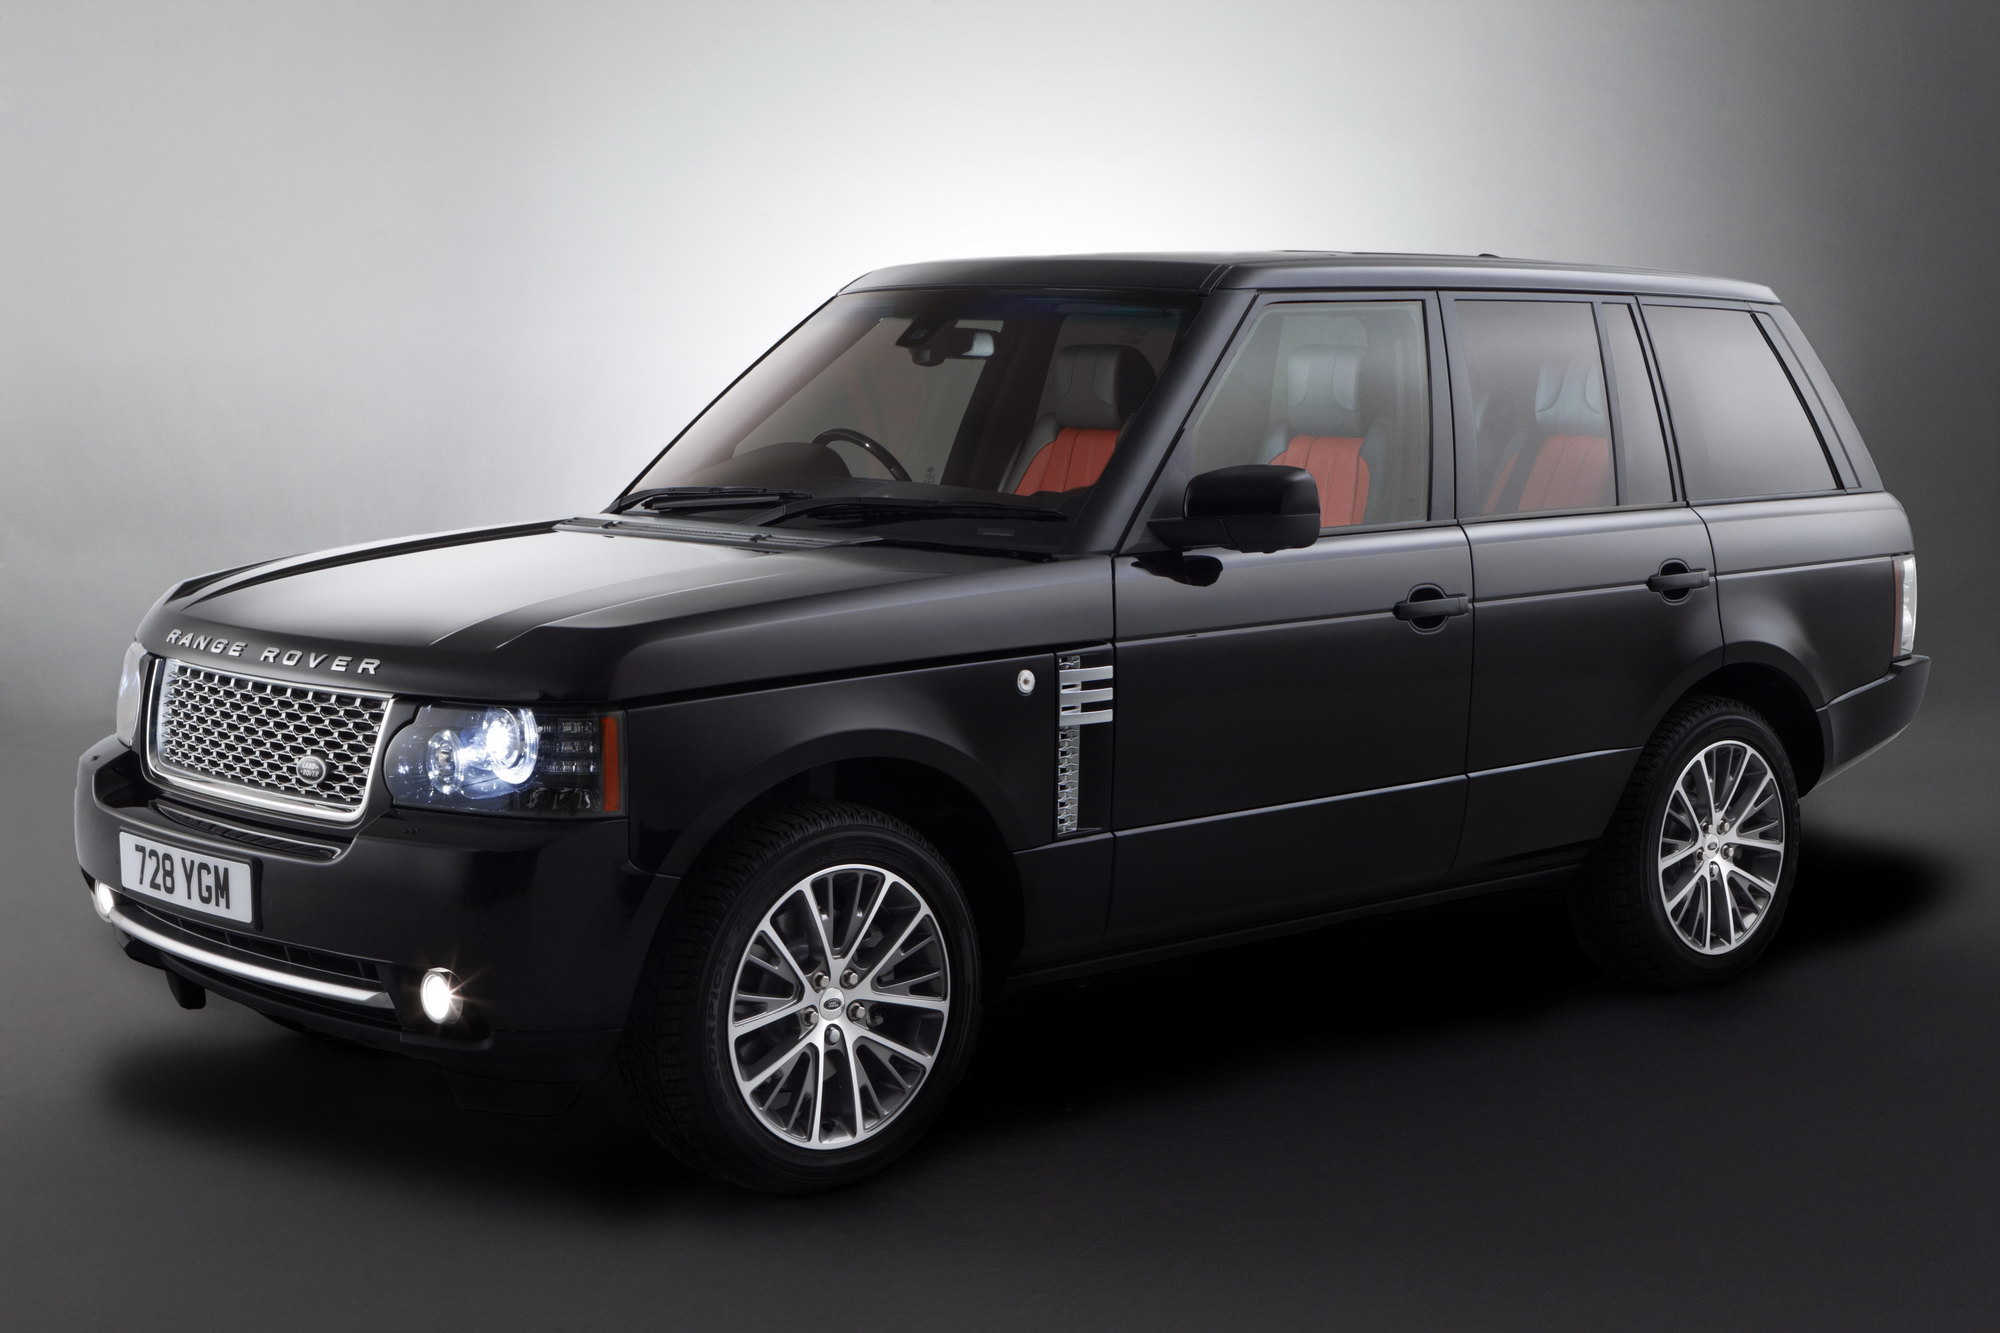 2010 Range Rover Autobiography Black Limited Edition Review Top